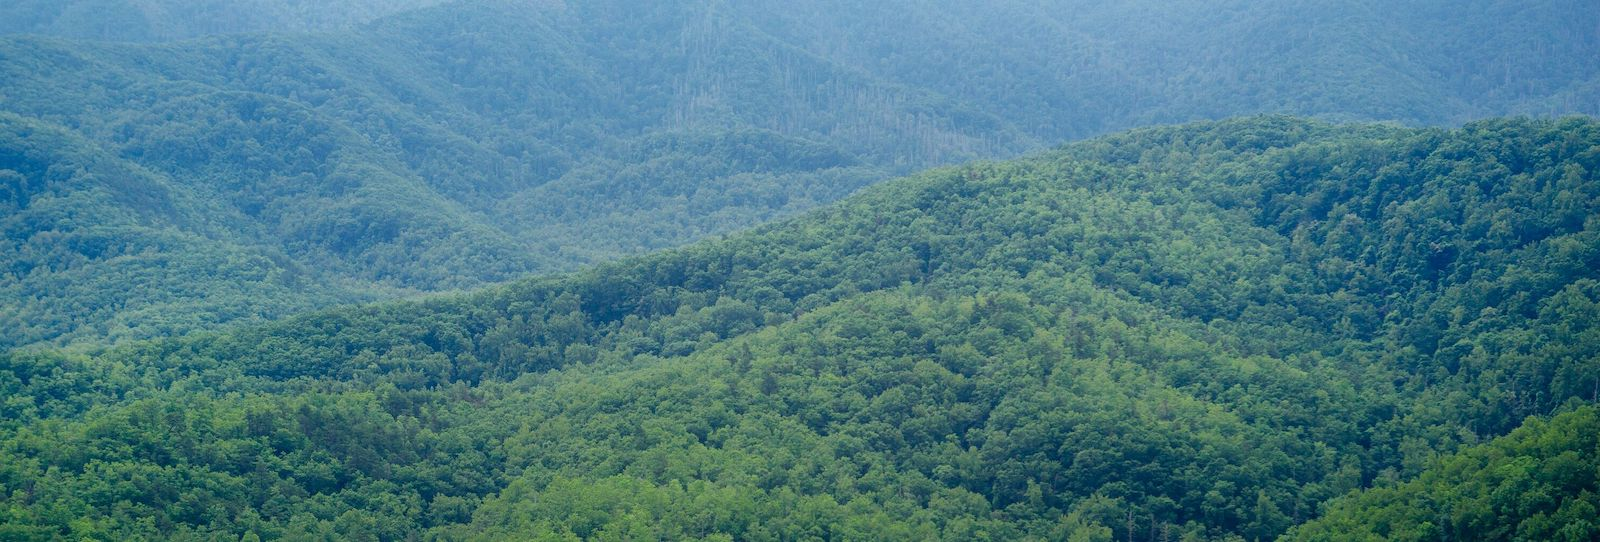 Top 4 Reasons Why Our Ziplines Offer the Best Views in the Smoky Mountains